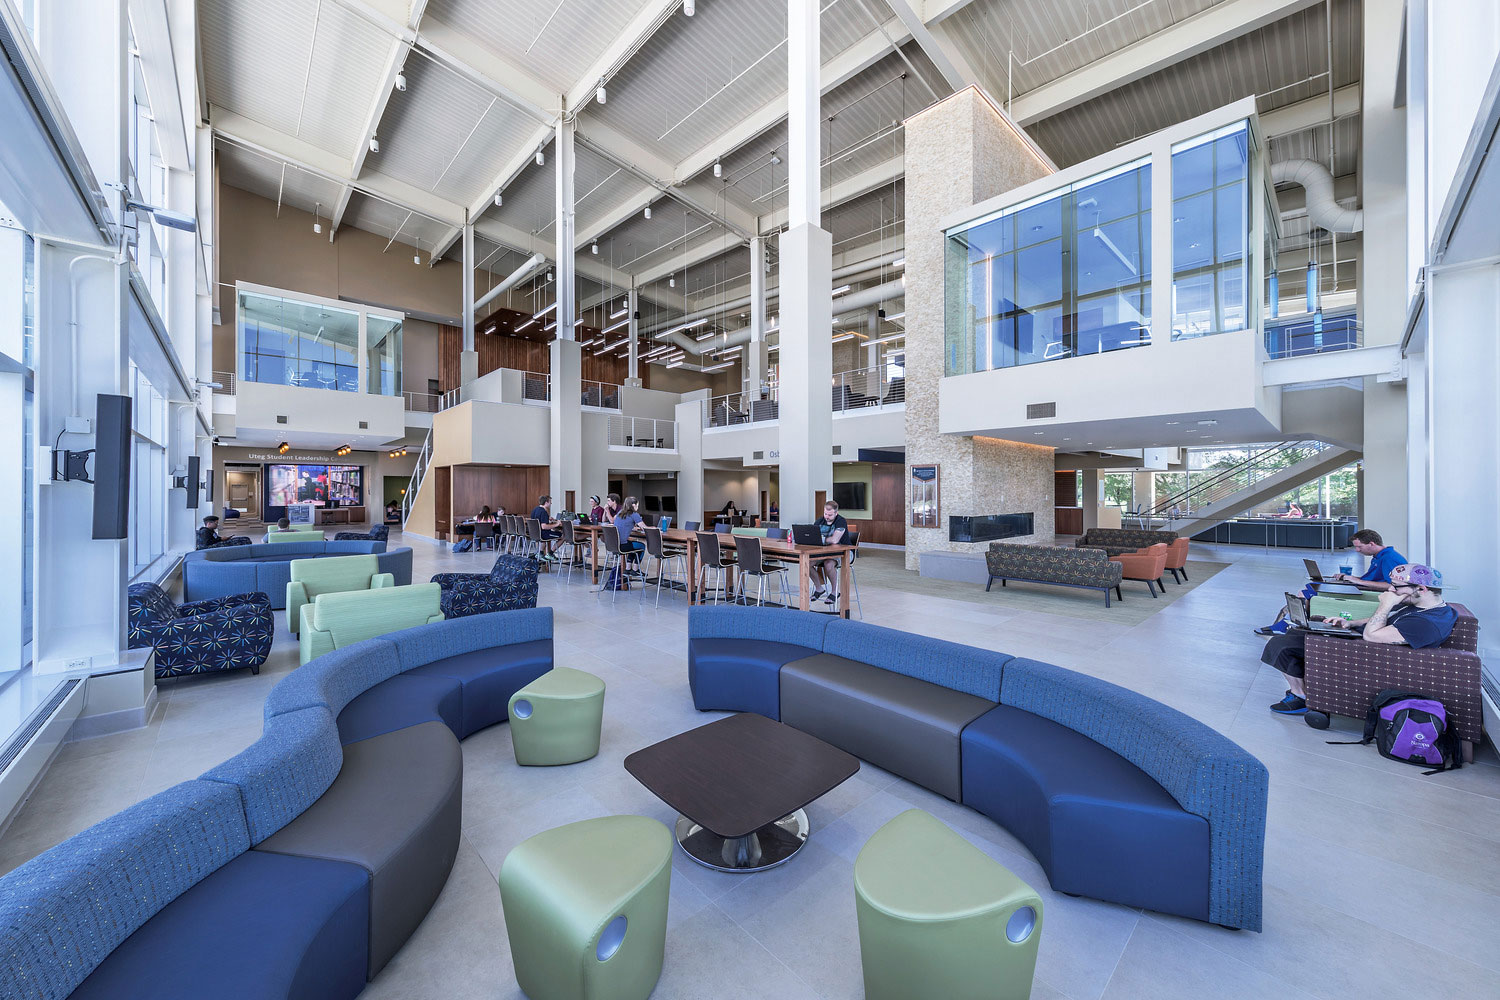 There are lounge areas throughout the union that create a sense of community for the students. Photo courtesy of Dewberry. Mark Ballogg, photographer.